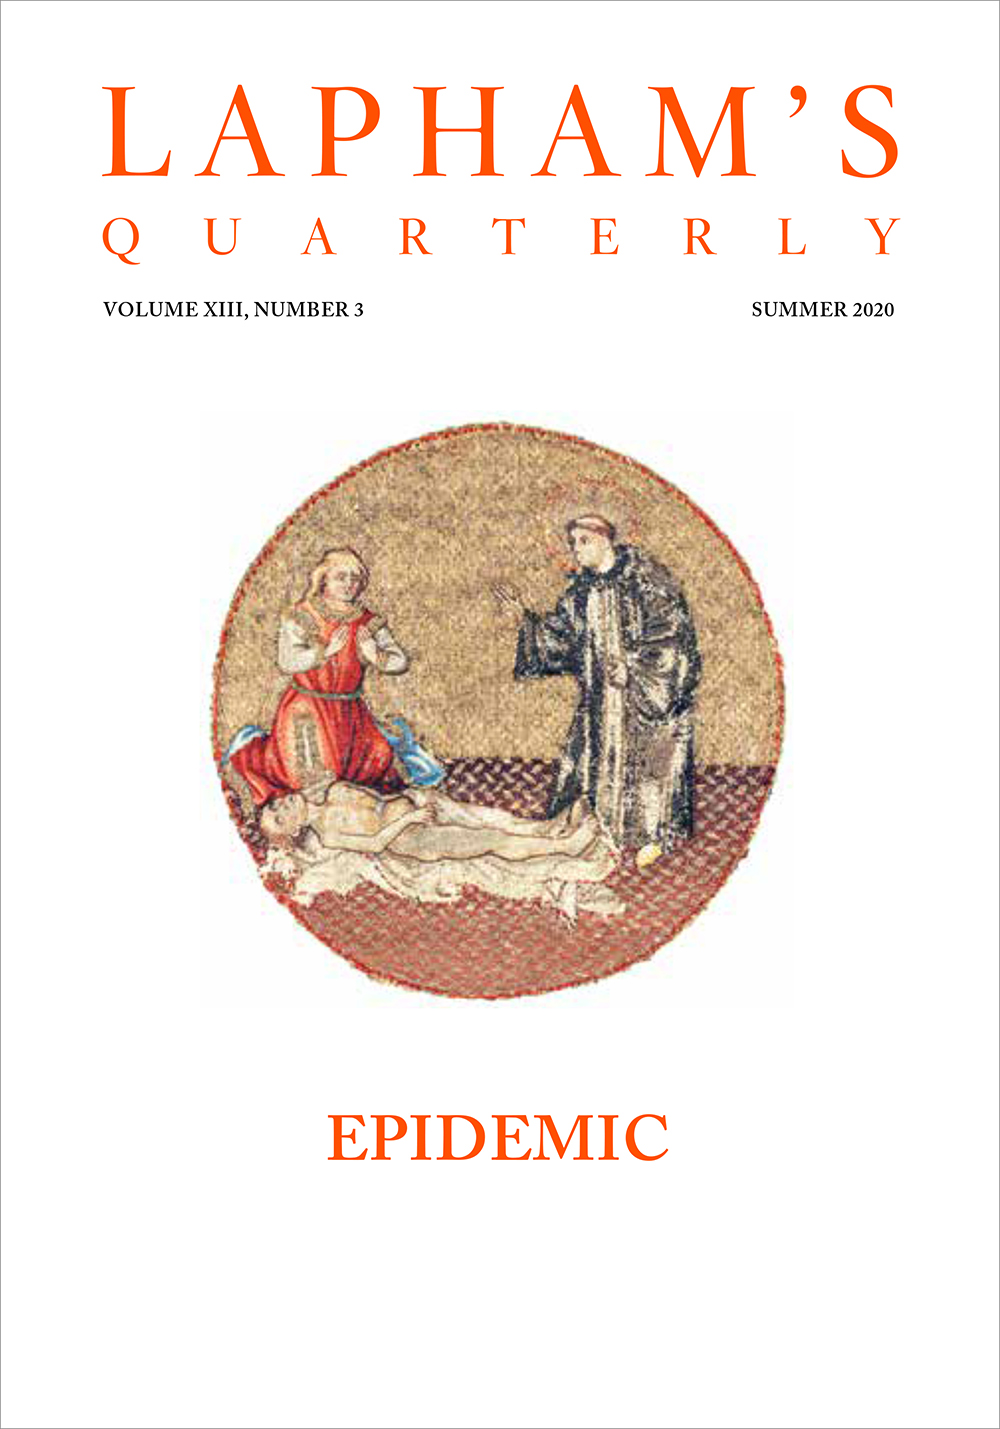 Cover of Epidemic, the new issue of Lapham's Quarterly.